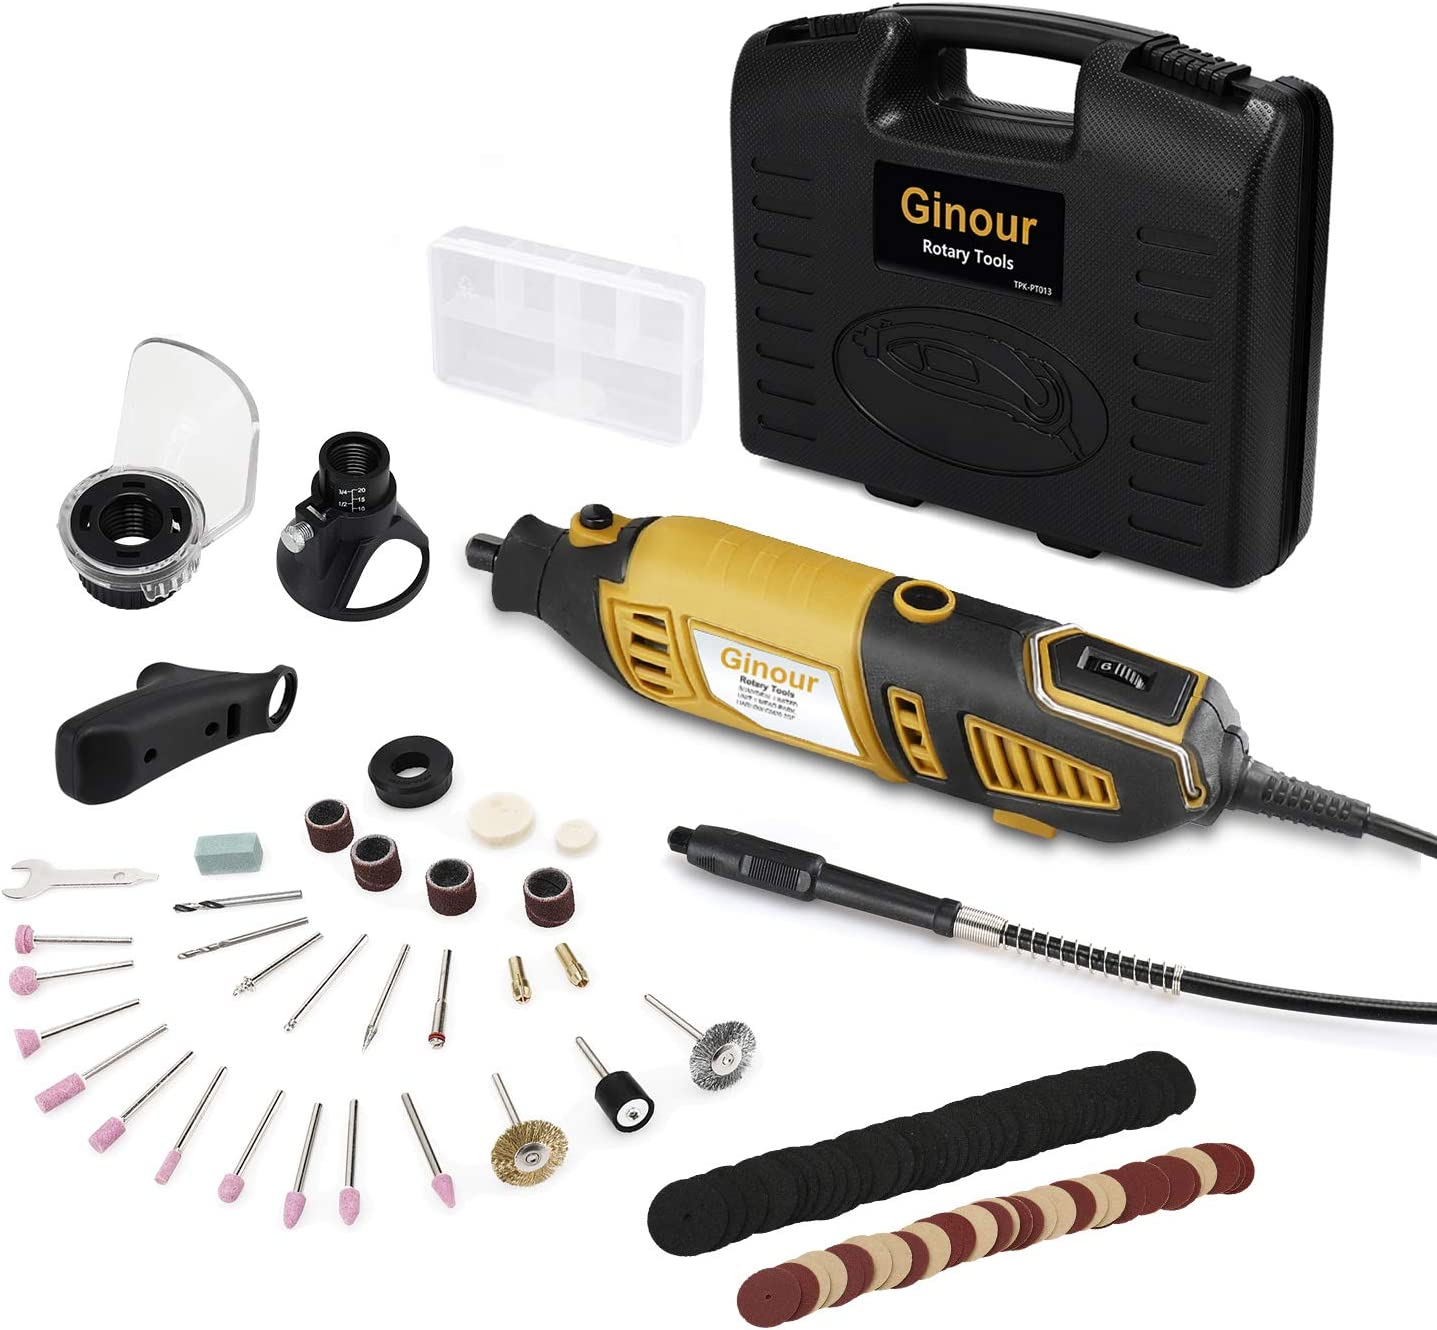 Ginour 1.5AMP 6+Max Variable Speed Rotary Tool